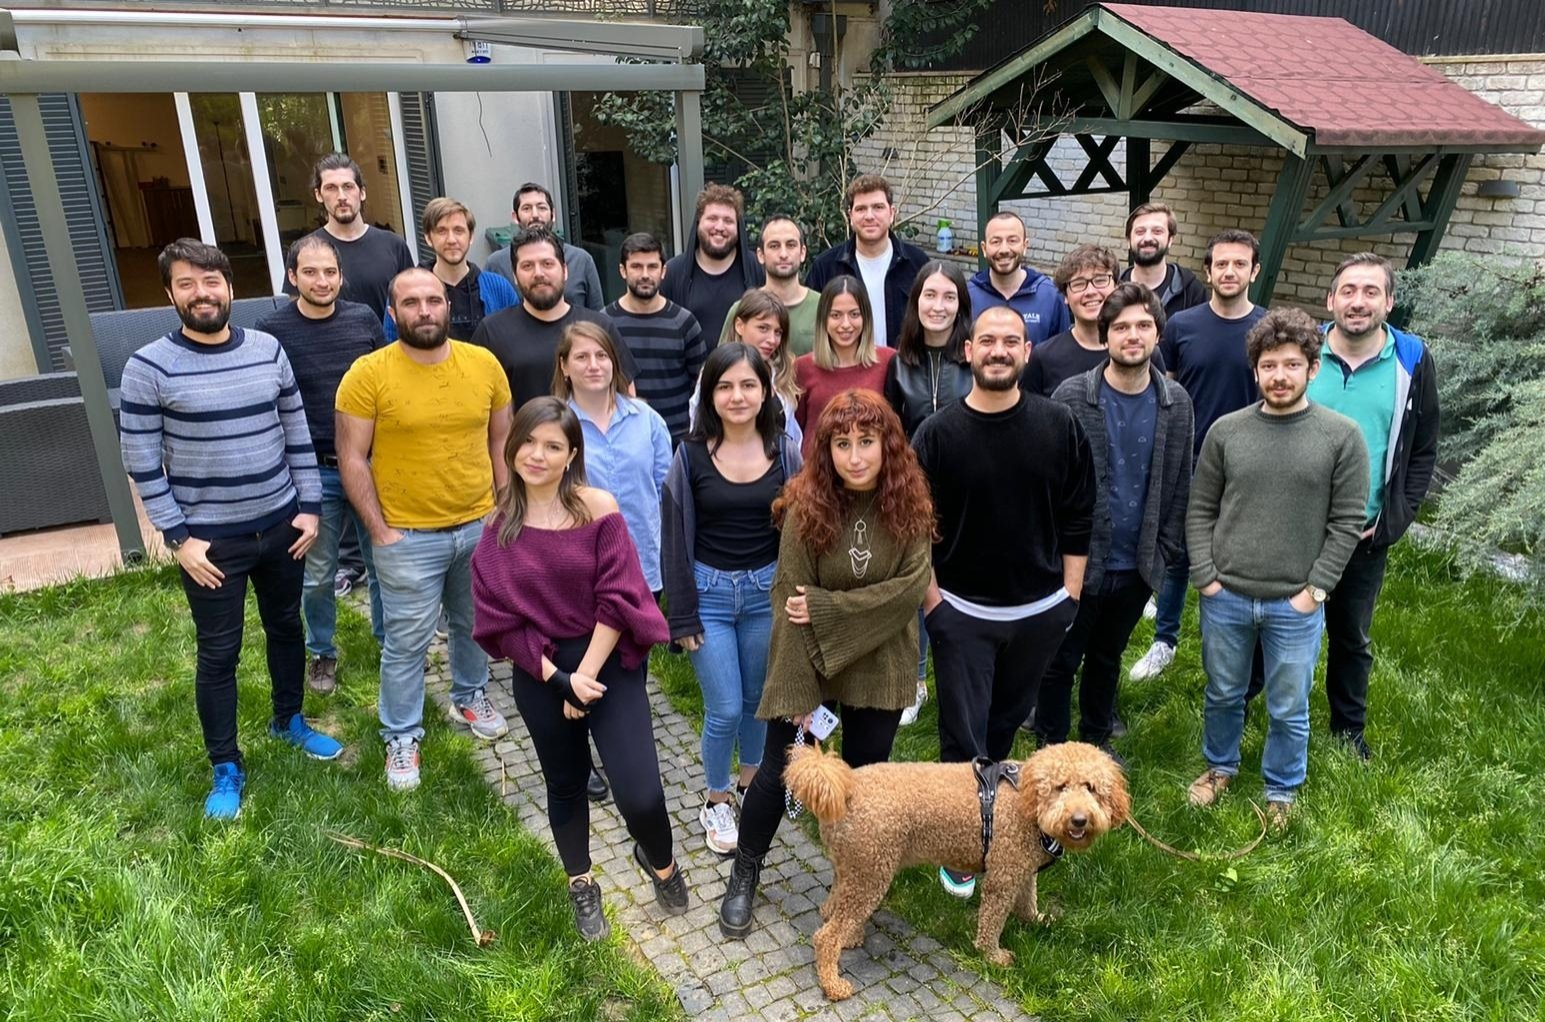 Members of Istanbul-based gaming startup Ace Games stand together in a photo provided on April 21, 2021. (Courtesy of Ace Games)